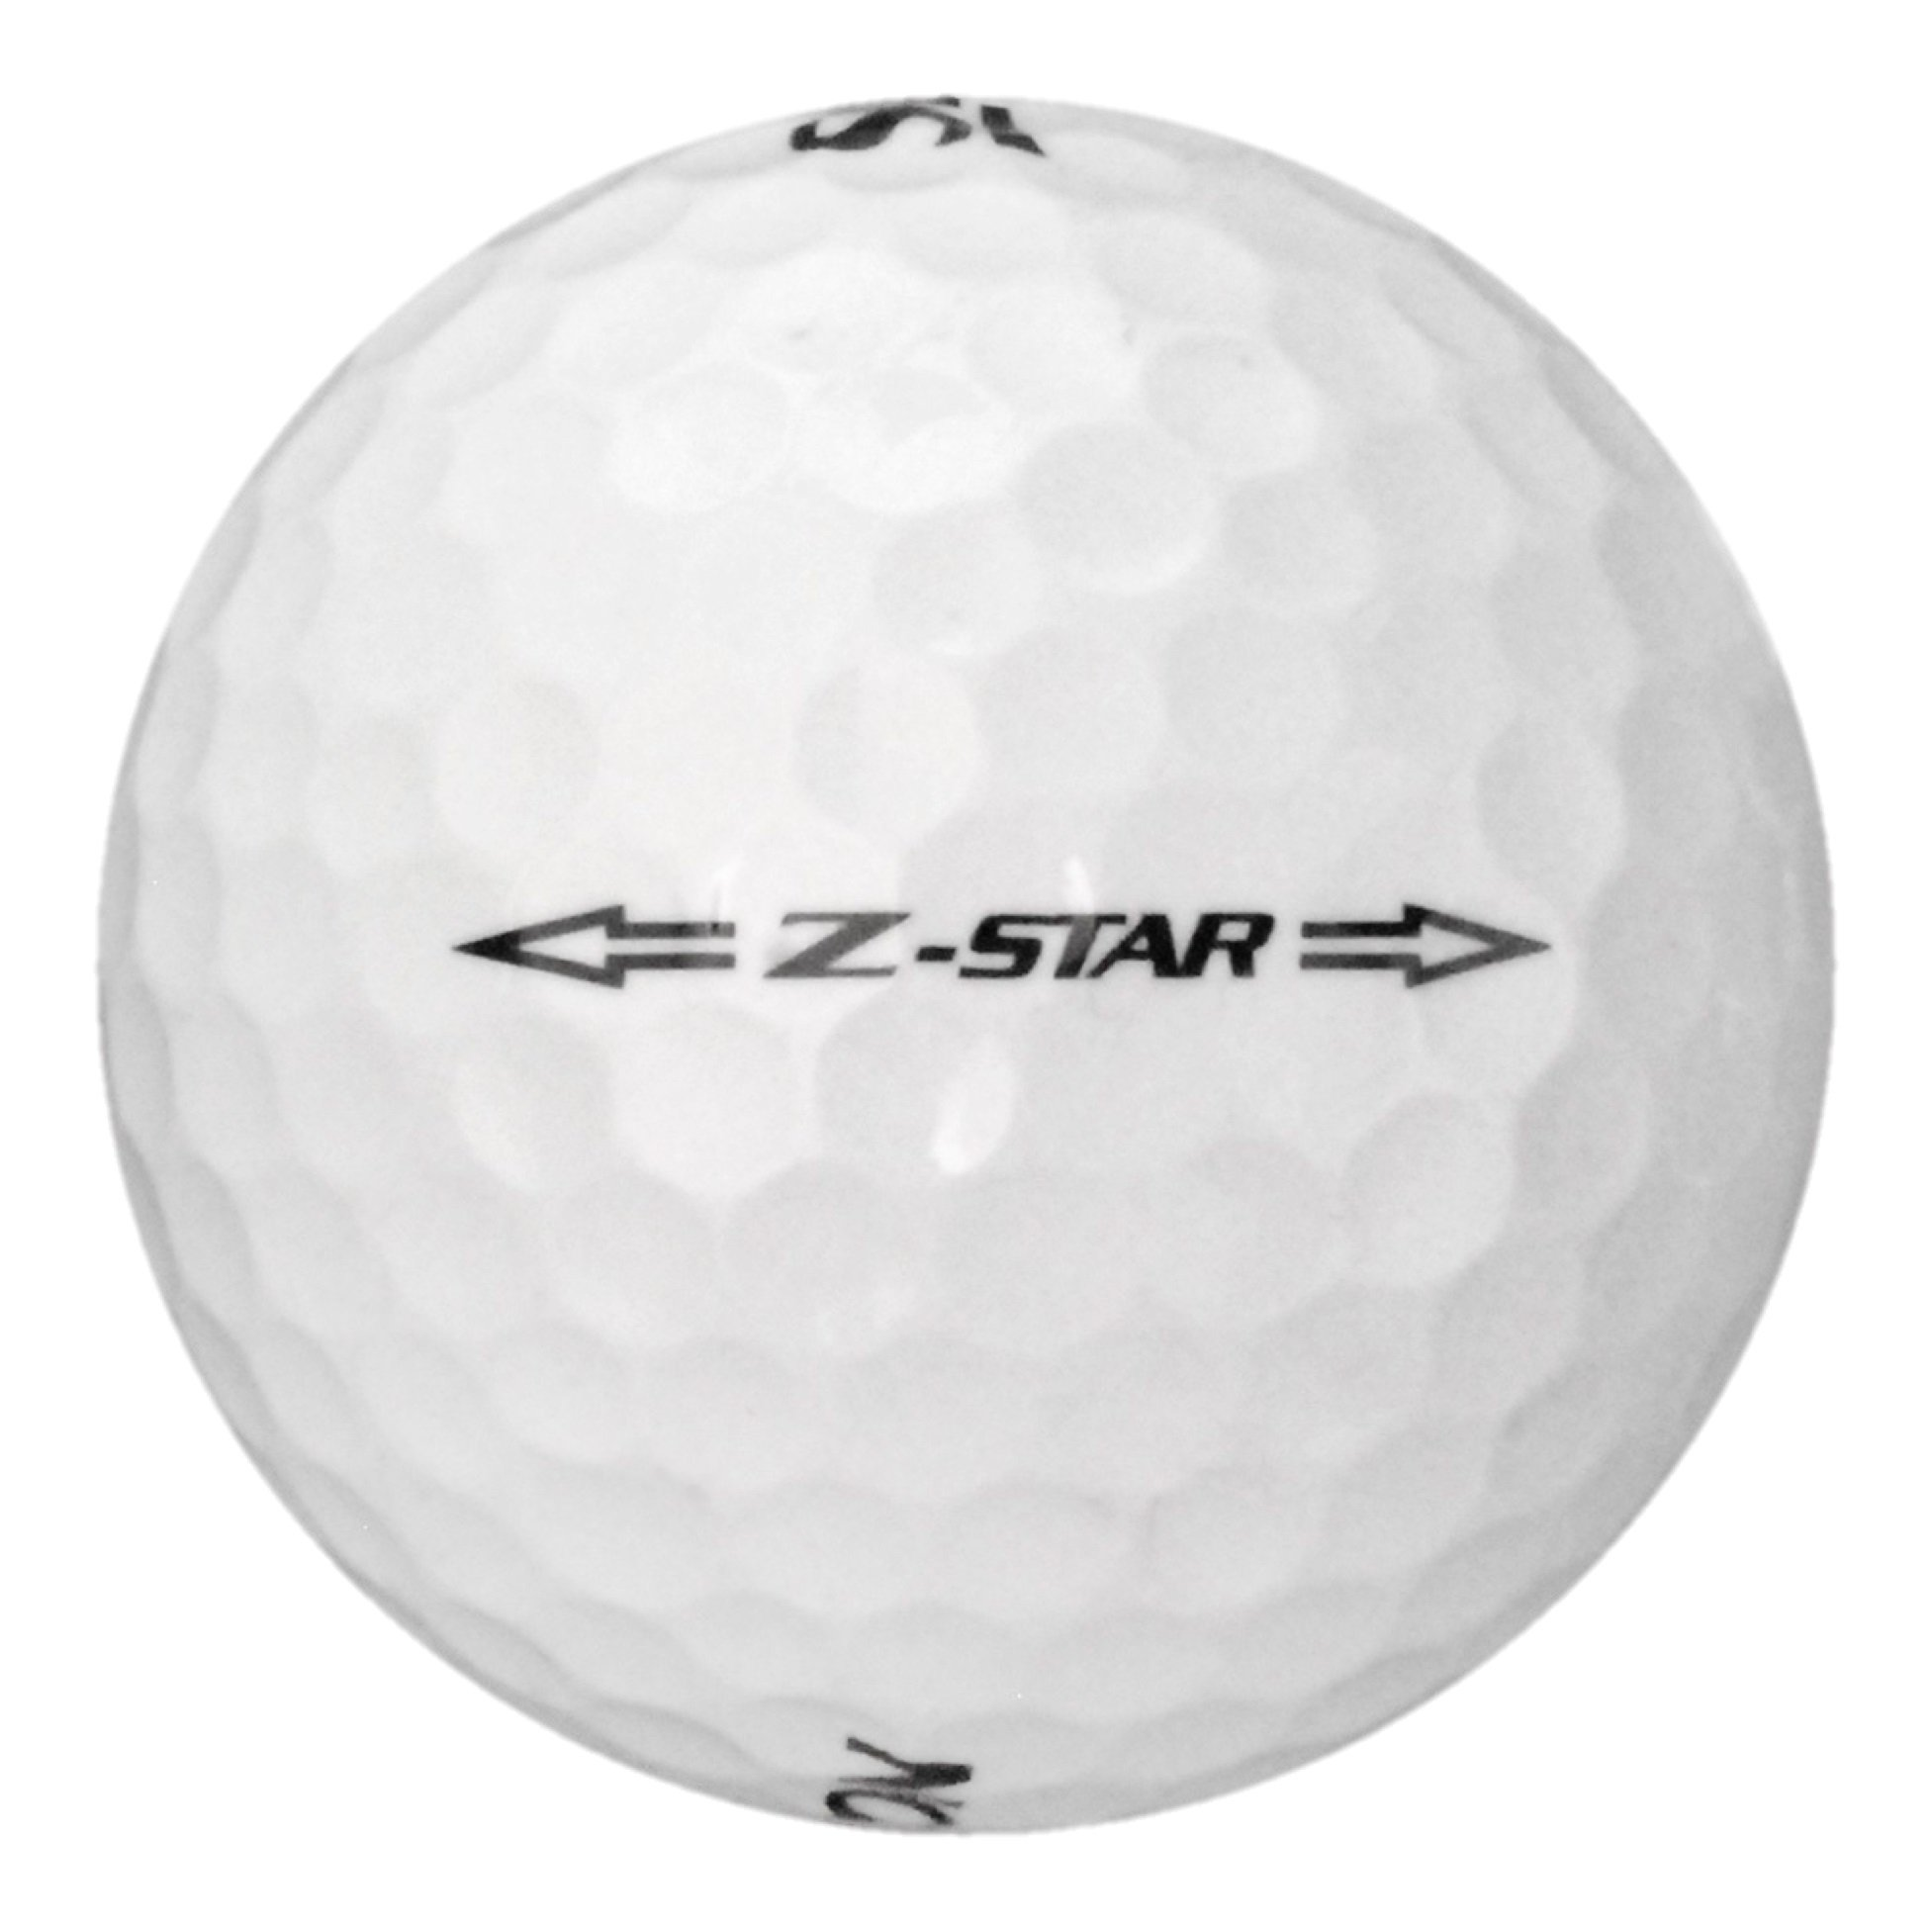 96 Srixon Z-Star - Value (AAA) Grade - Recycled (Used) Golf Balls